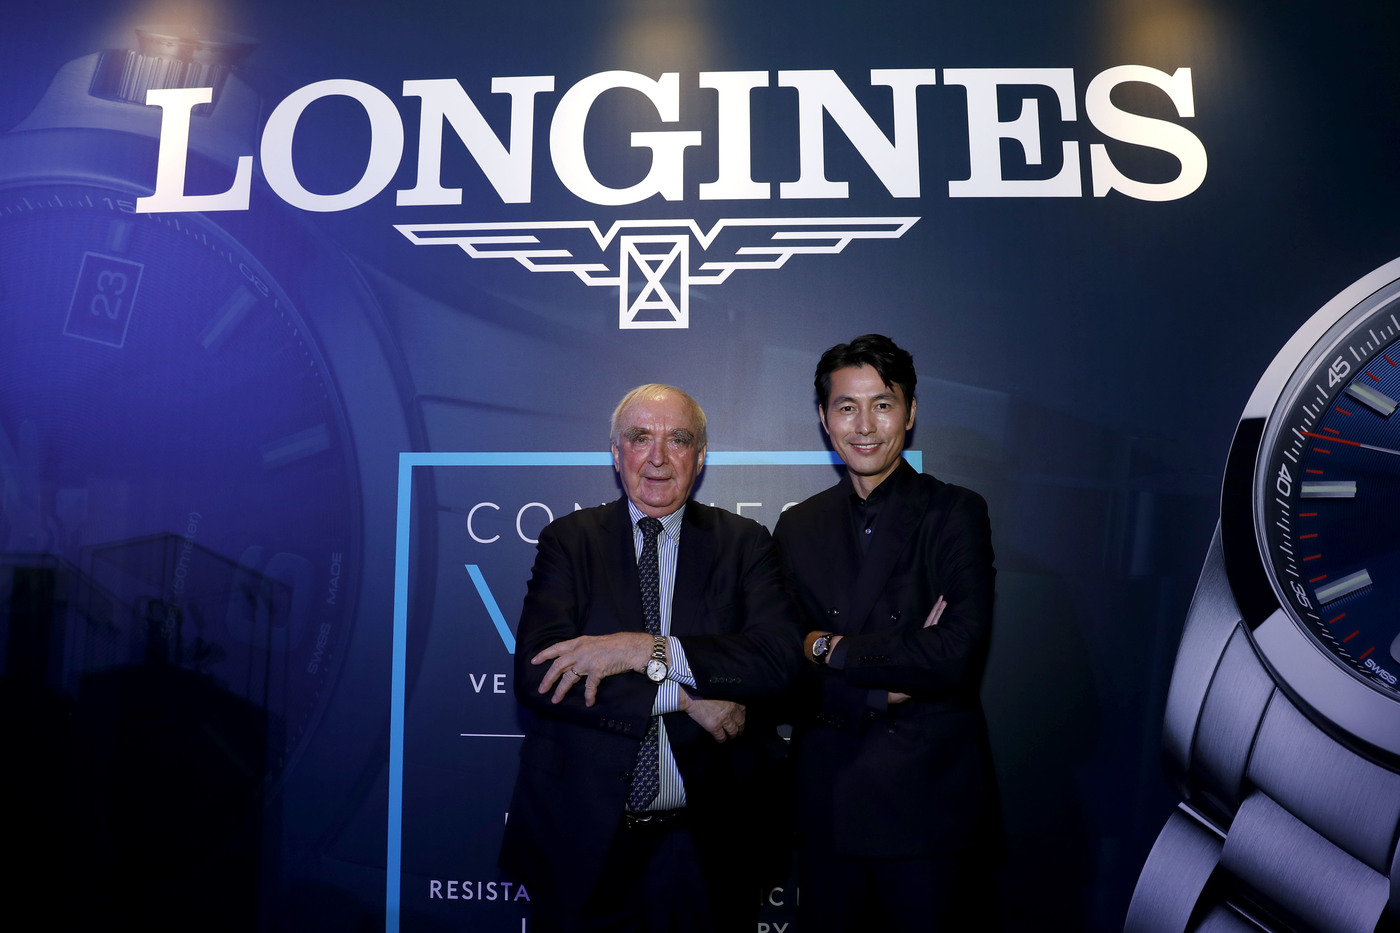 Longines Flat Racing Event: Frankie Dettori Crowned the 2018 Longines World's Best Jockey  8